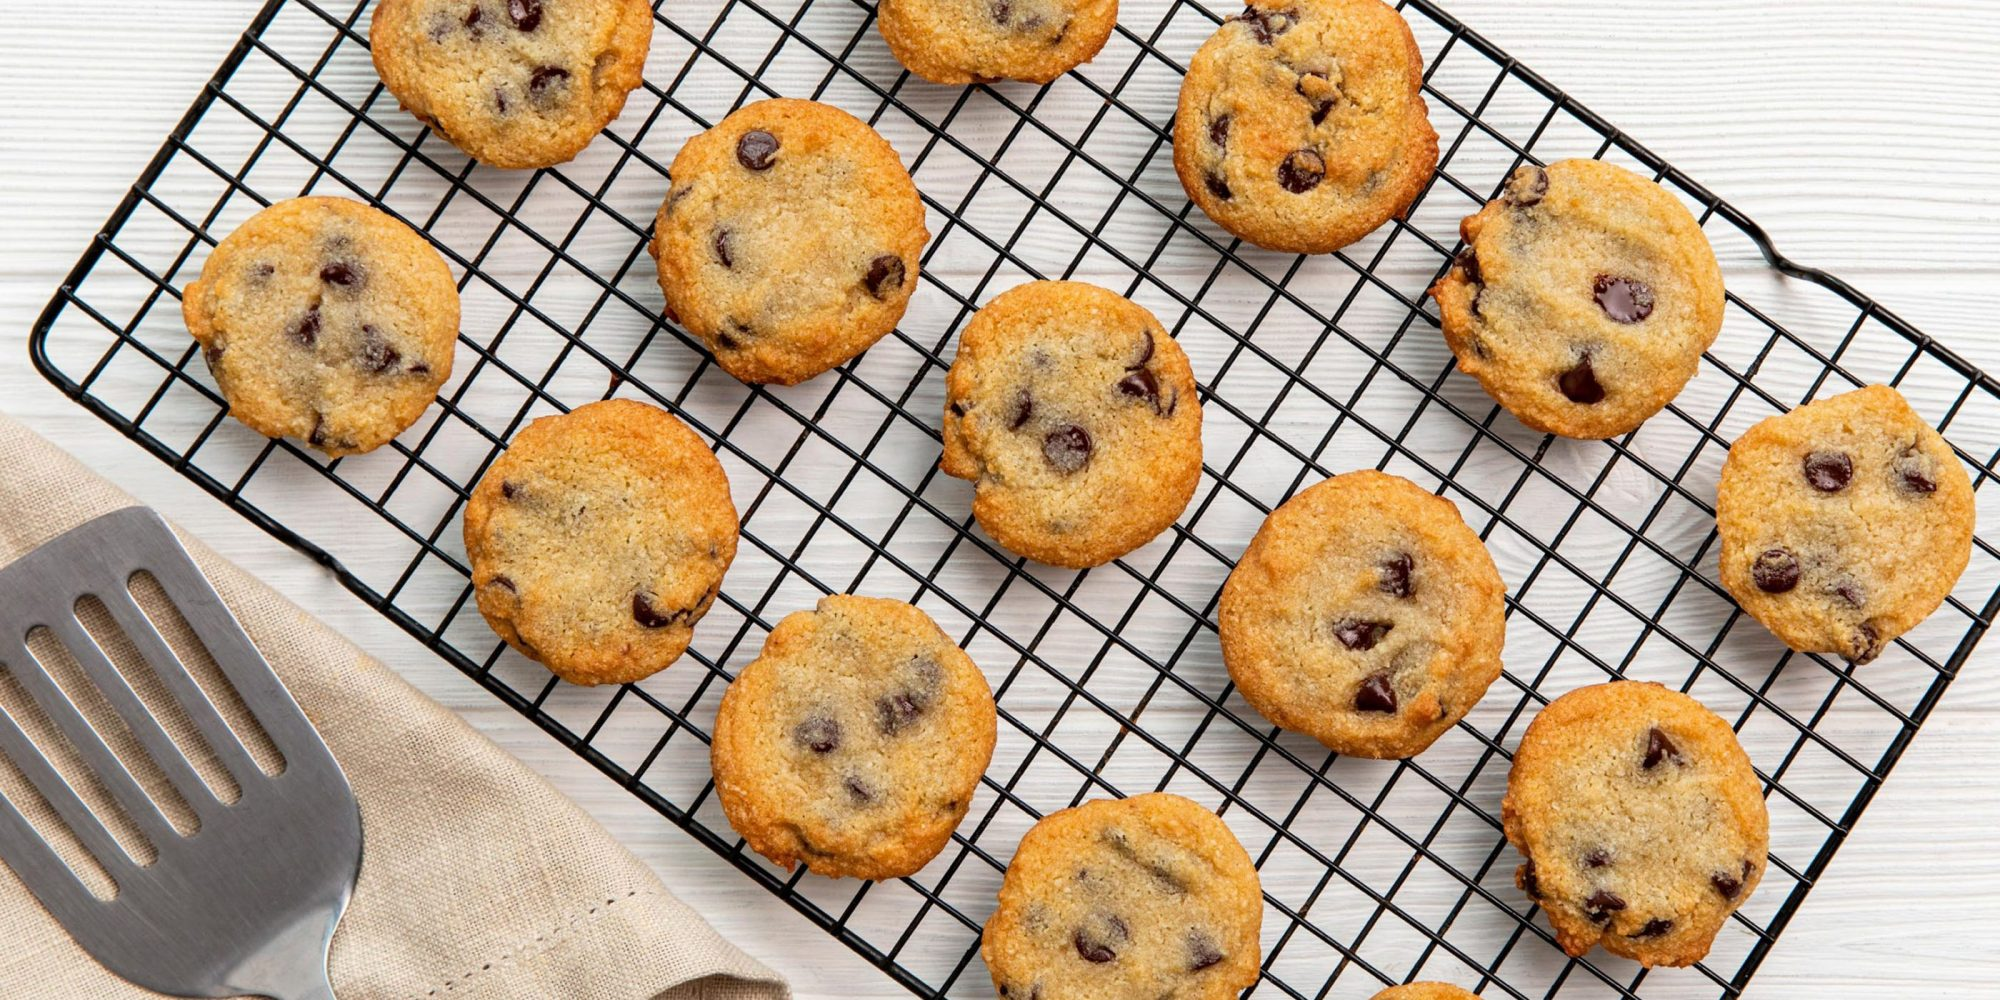 Keto Chewy Chocolate Chip Cookies